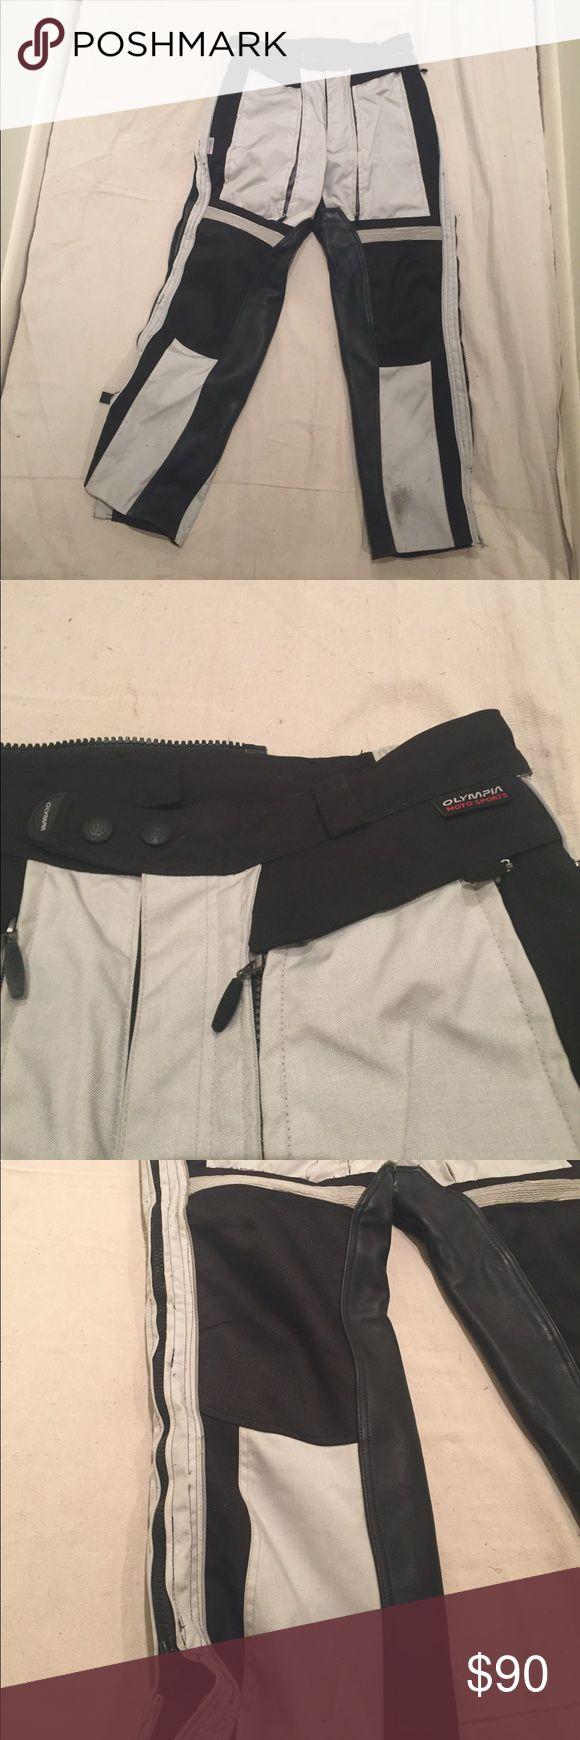 Motorcycle Pants | Olympia Moto Sports Olympia Moto Sports motorcycle pants. Great material - still in great condition for safe riding. 3M Scotchlite Reflective Technology. Zippers up the sides and in the front for breathability. Very light gray color. Olympia Moto Sports Pants